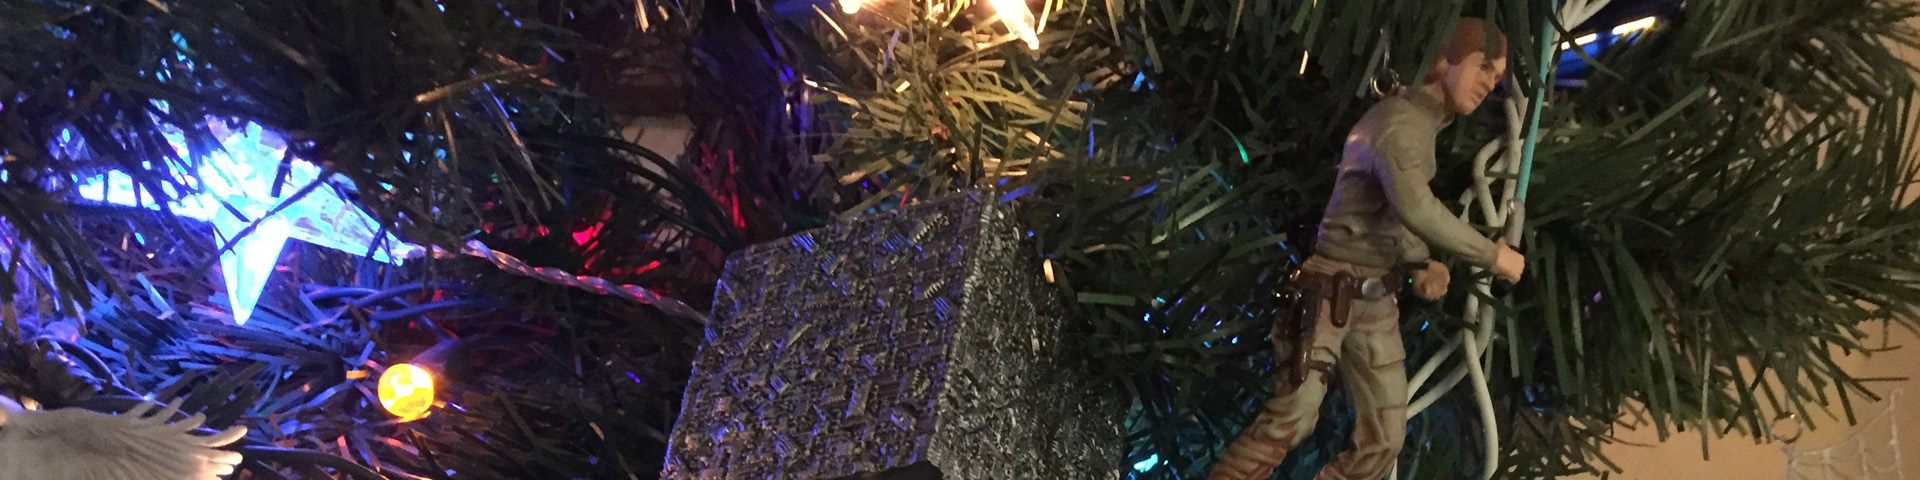 This close-up of the 2015 edition of the geek tree features IKEA star lights, the Borg Cube, and Luke Skywalker in his Bespin outfit.